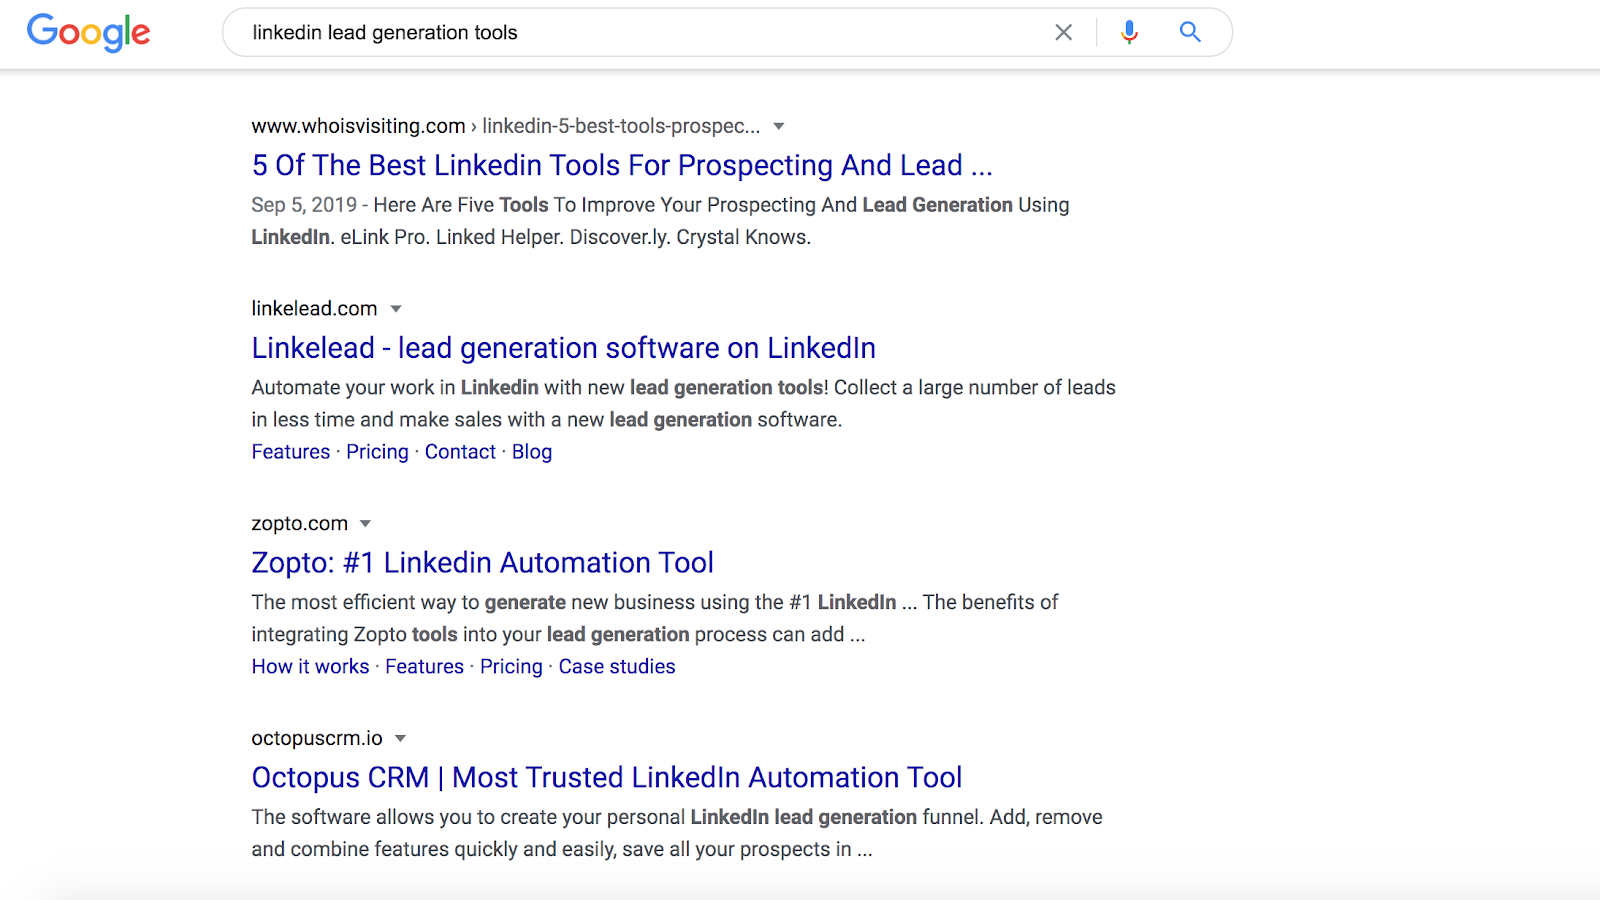 Why You Need to be Careful Automating Your LinkedIn Lead Generation